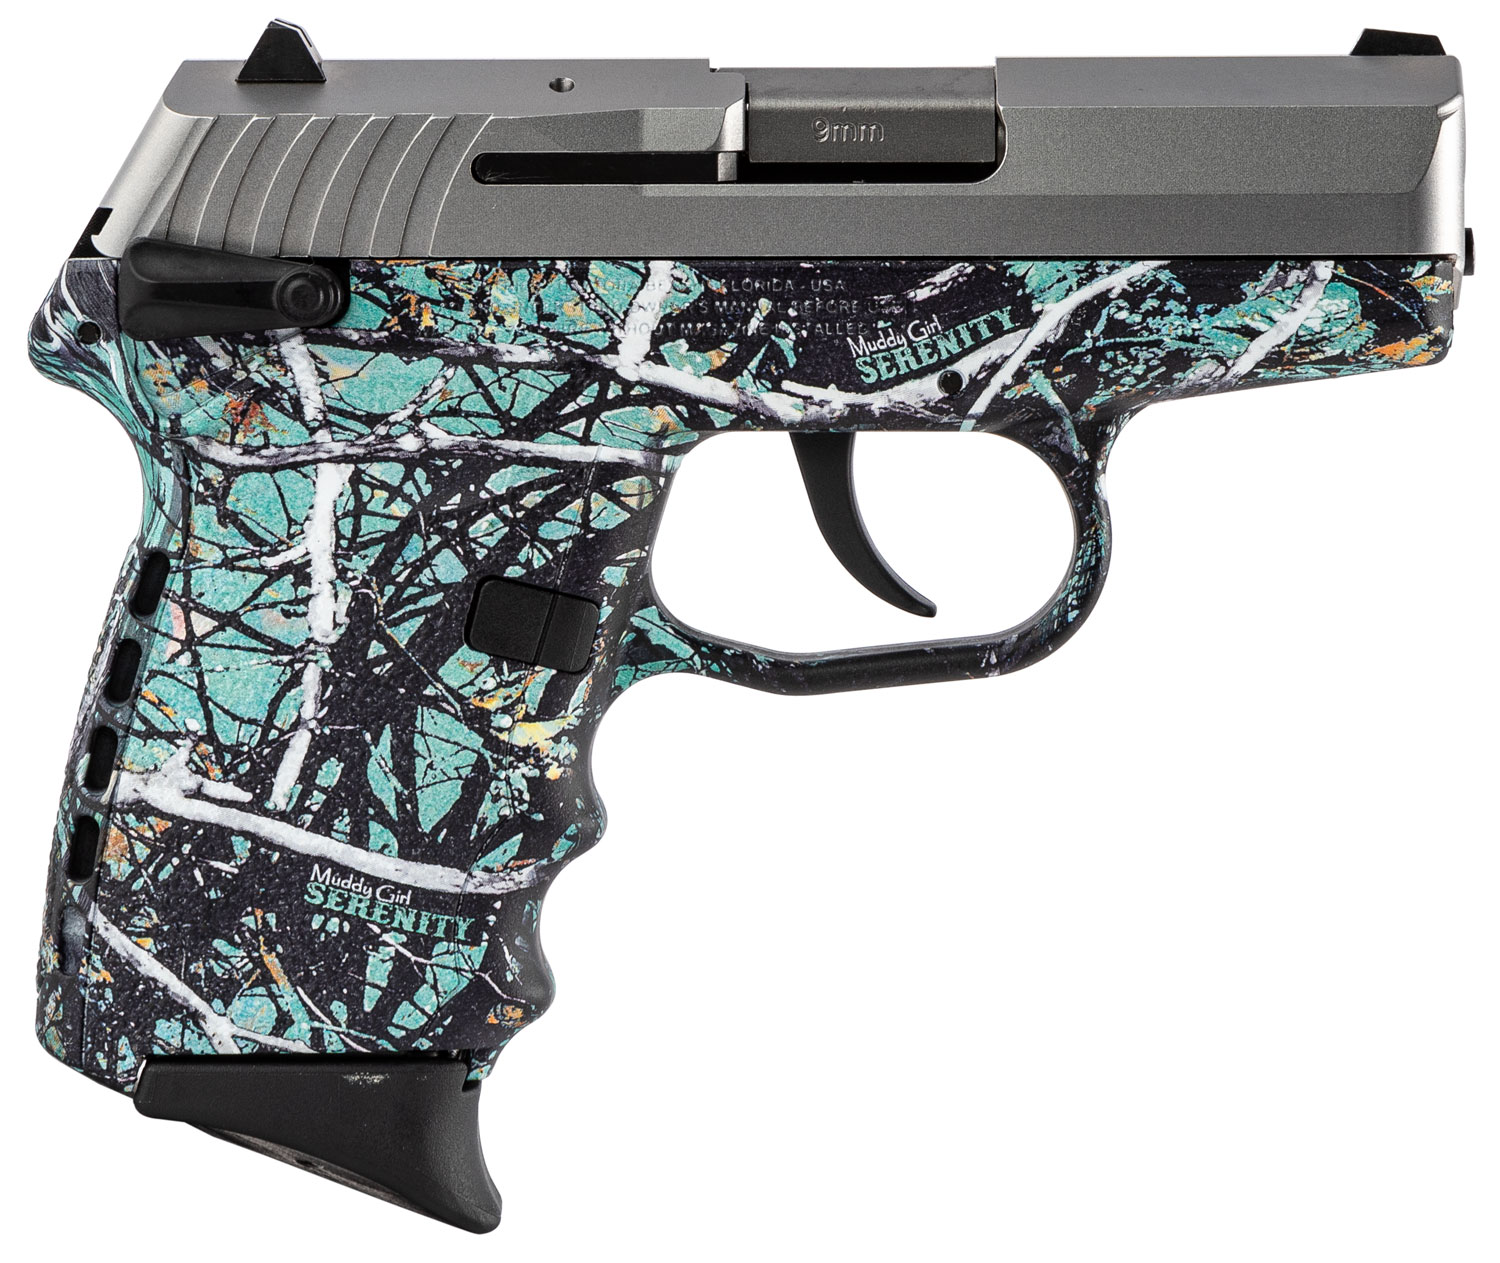 SCCY Industries CPX1TTMS CPX-1 Carbon  9mm Luger Double 3.1